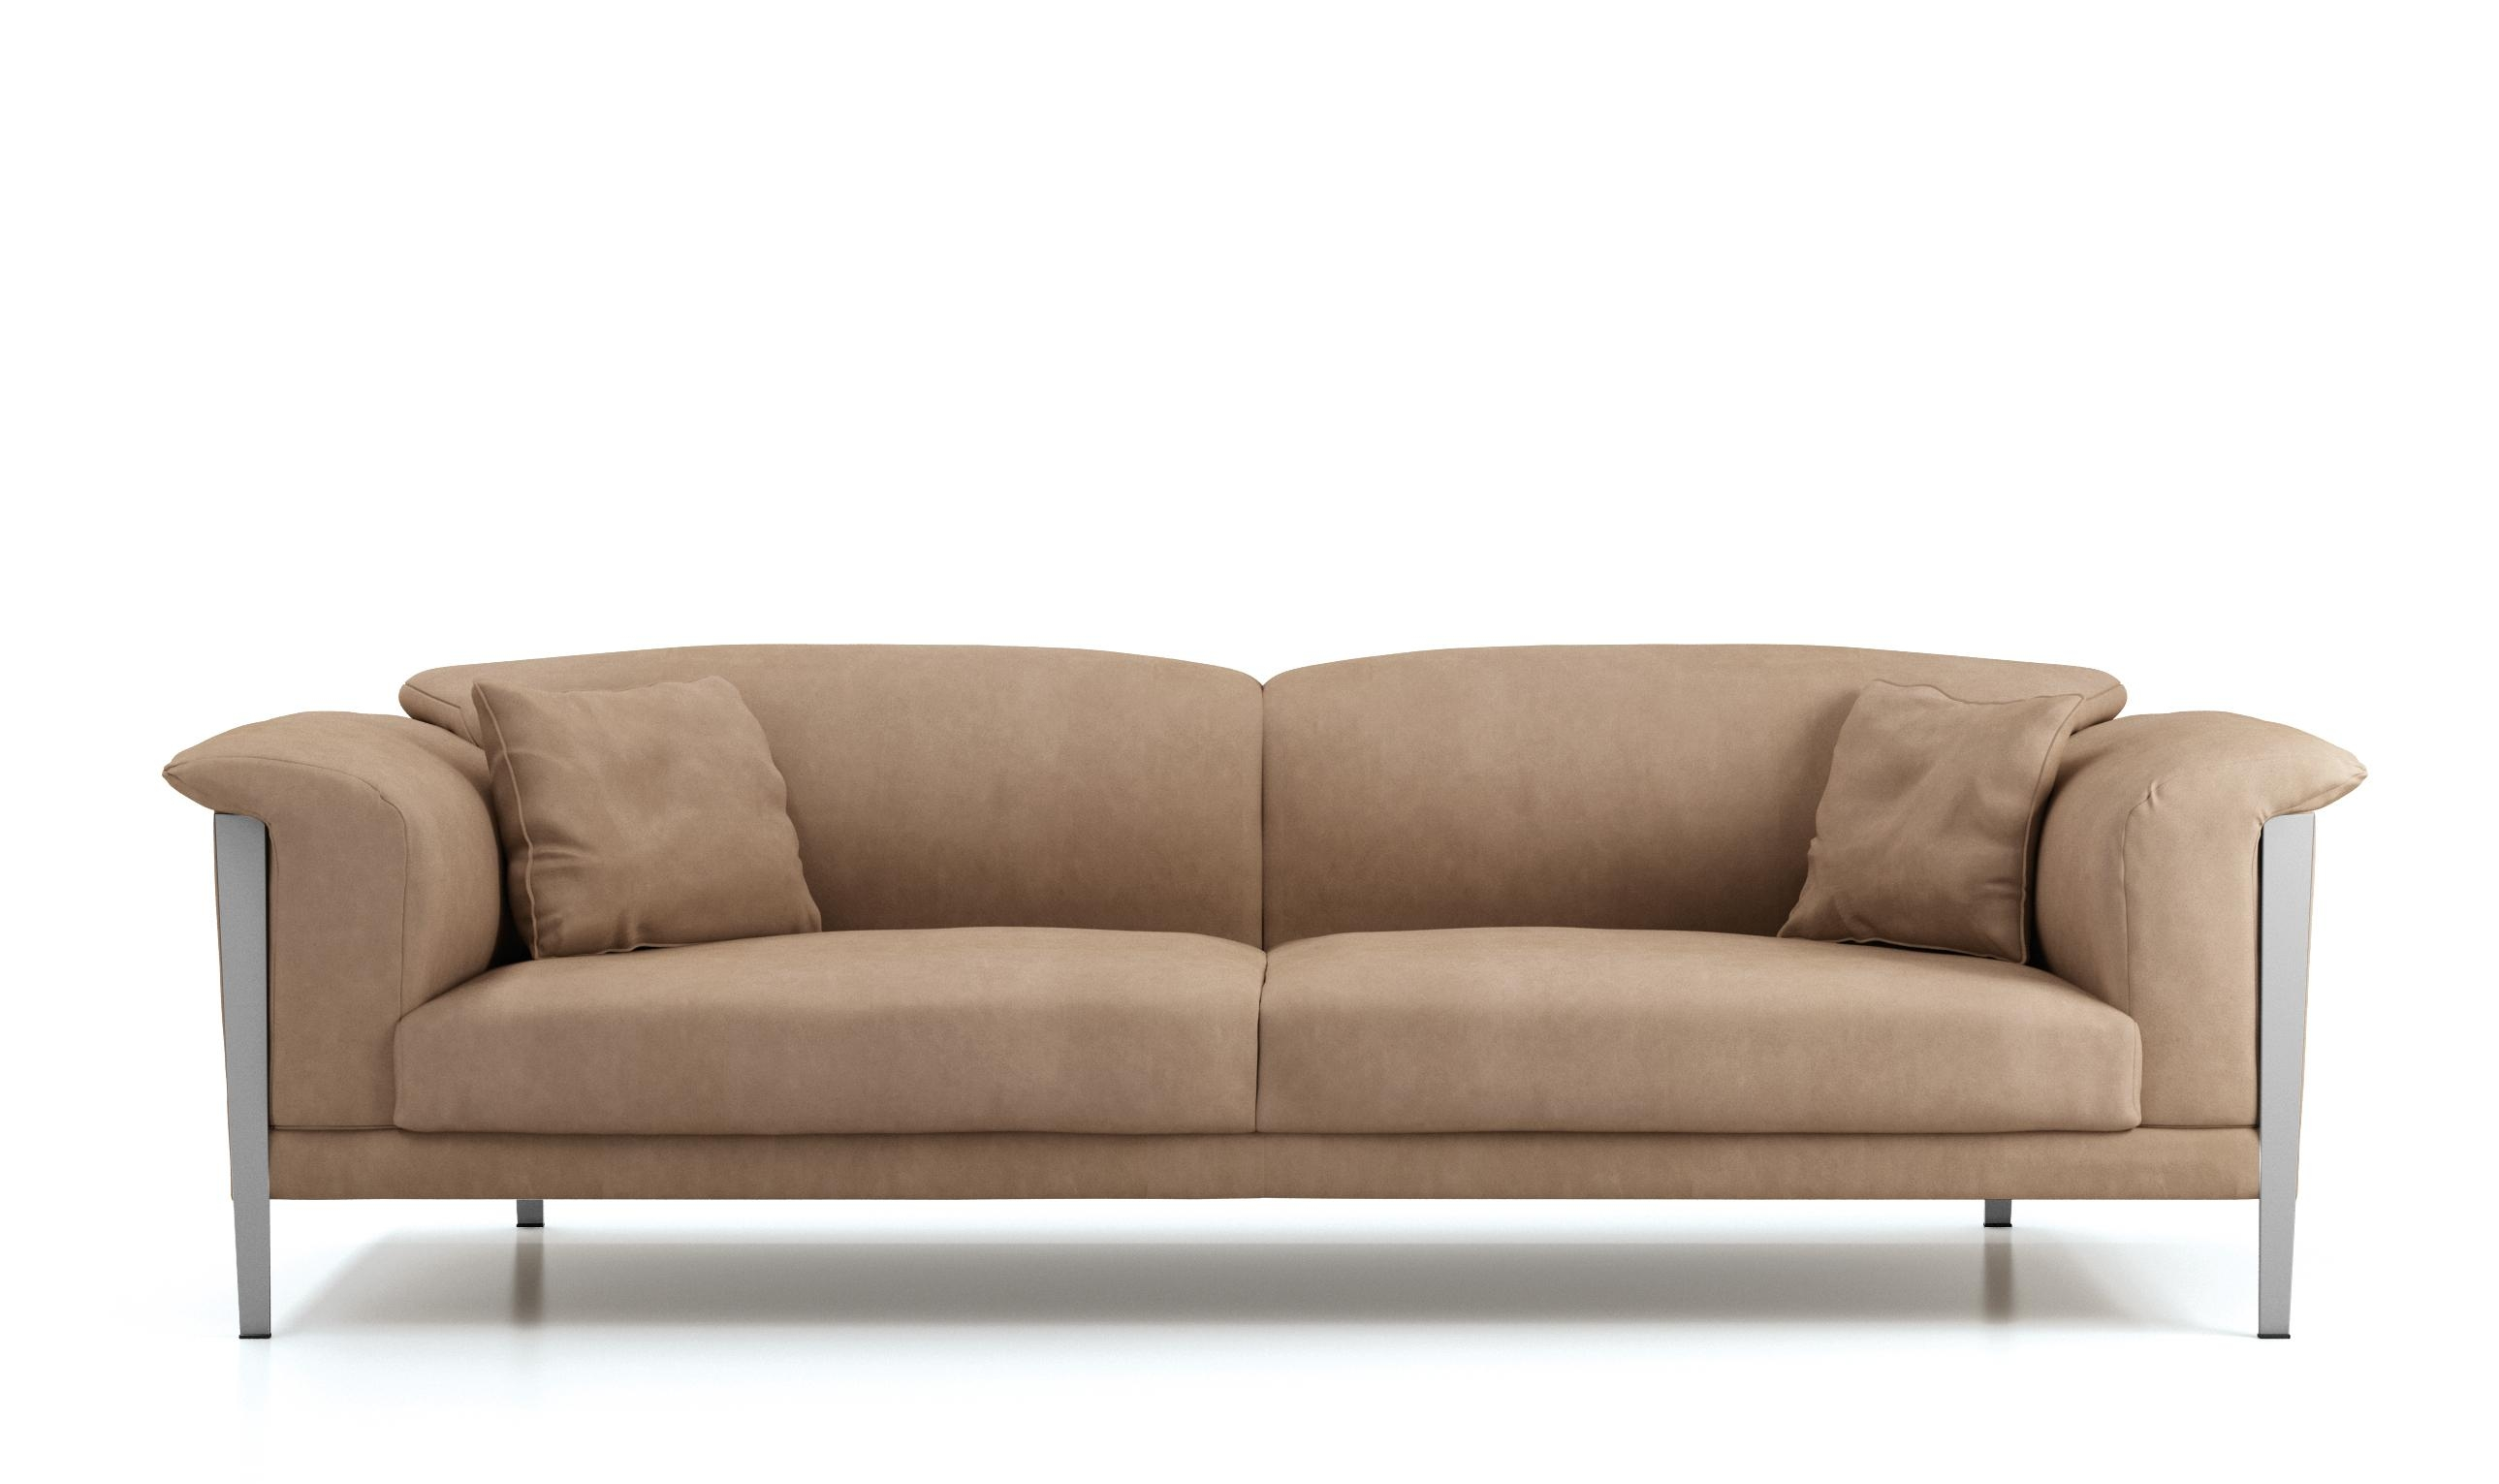 Italian Sofa Auckland 20 Best Collection Of Italian Leather Sofas Sofa Ideas